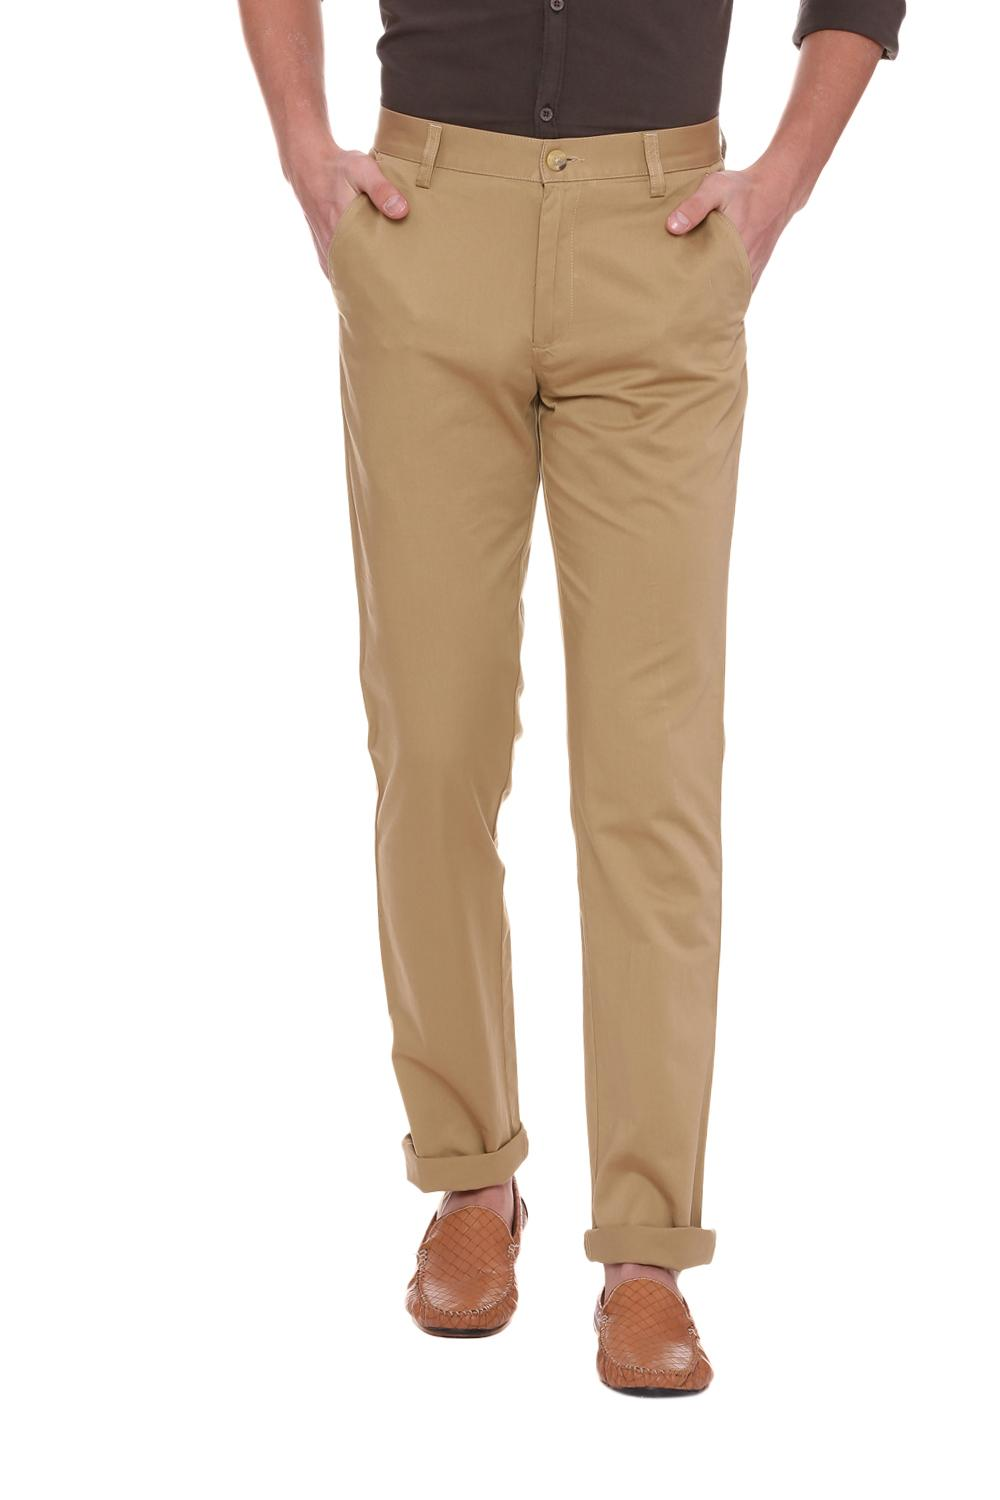 TROUSERS - Casual trousers Bsettecento For Sale Finishline Pre Order Cheap Online Cheap Sale Online Lowest Price Cheap Excellent pb8Yk